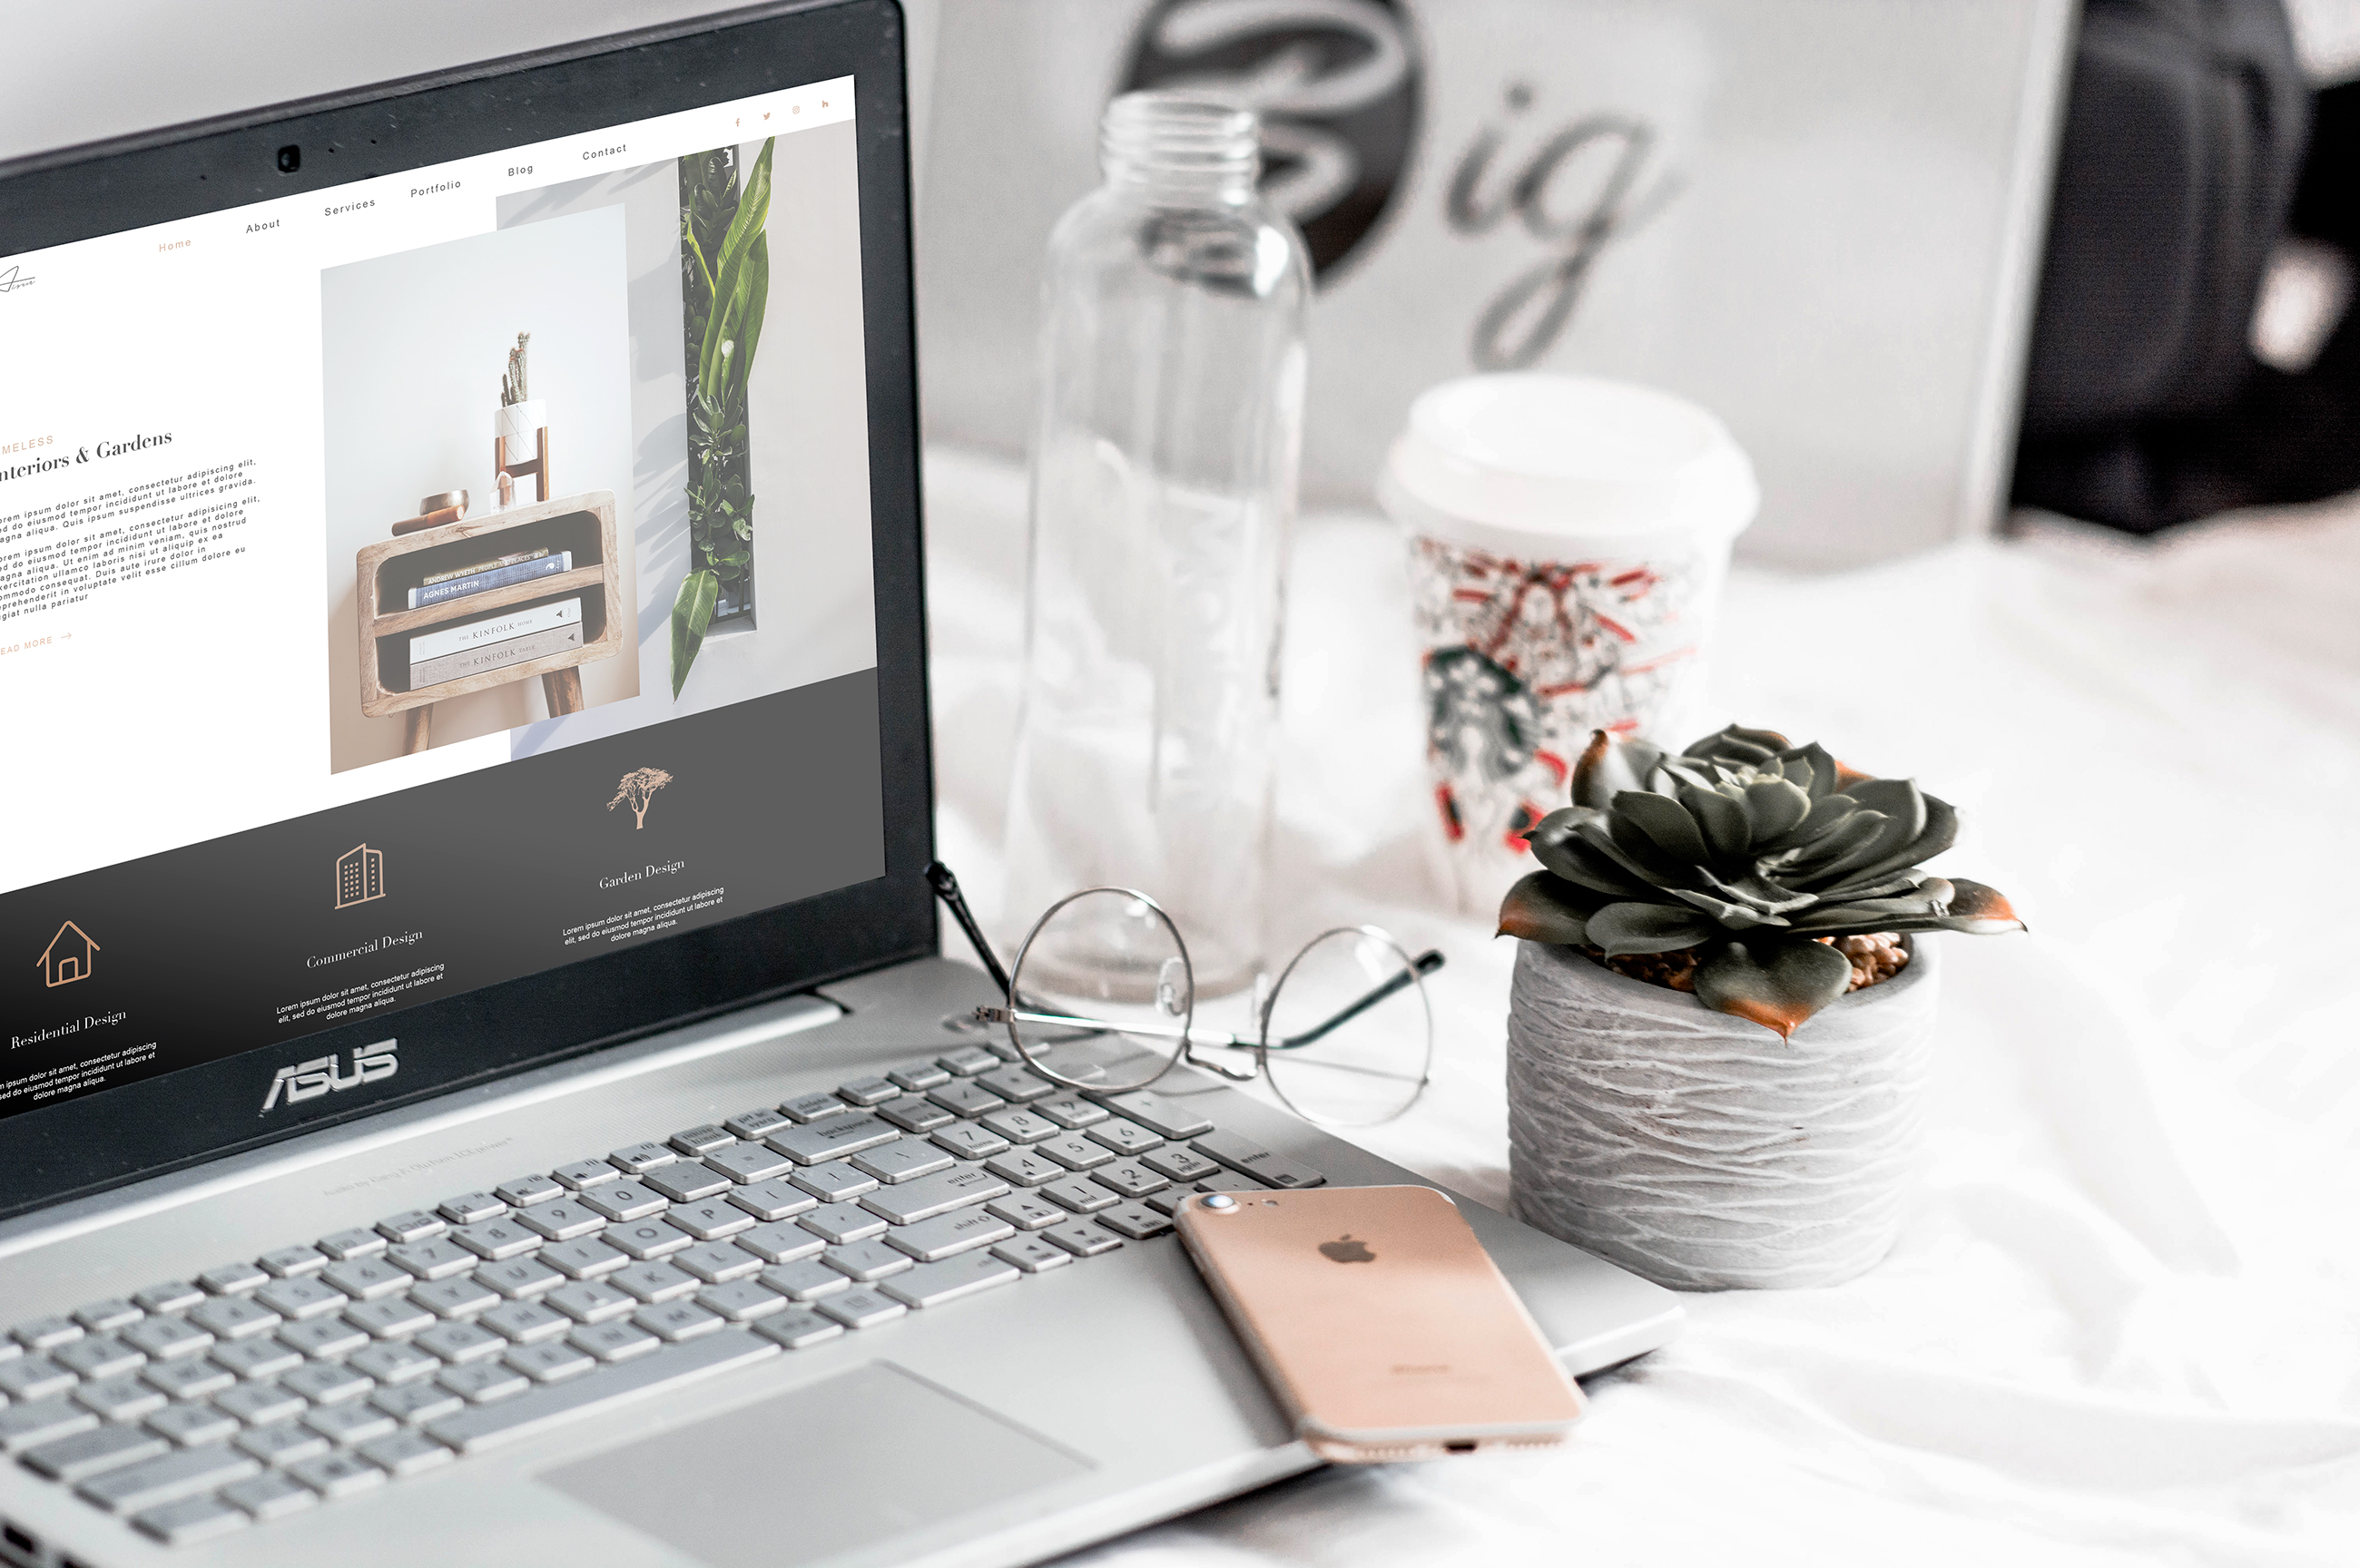 Stylish portfolio web design for the interior designer Aoife Lynch Interiors and Gardens